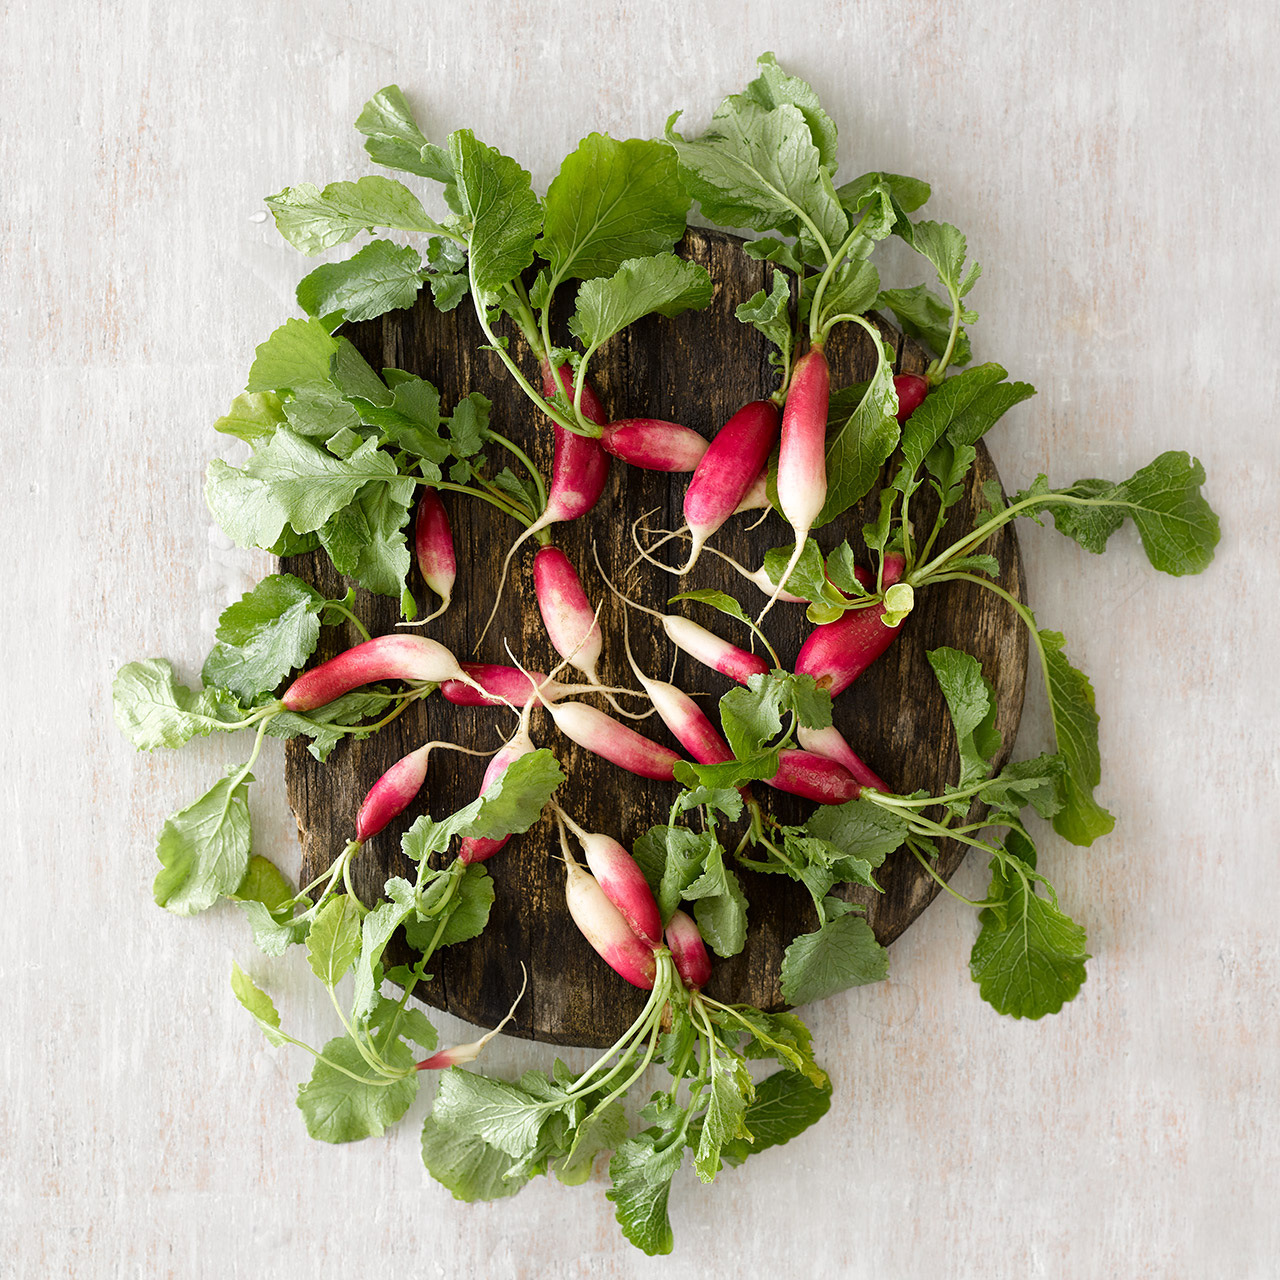 English Breakfast Radishes